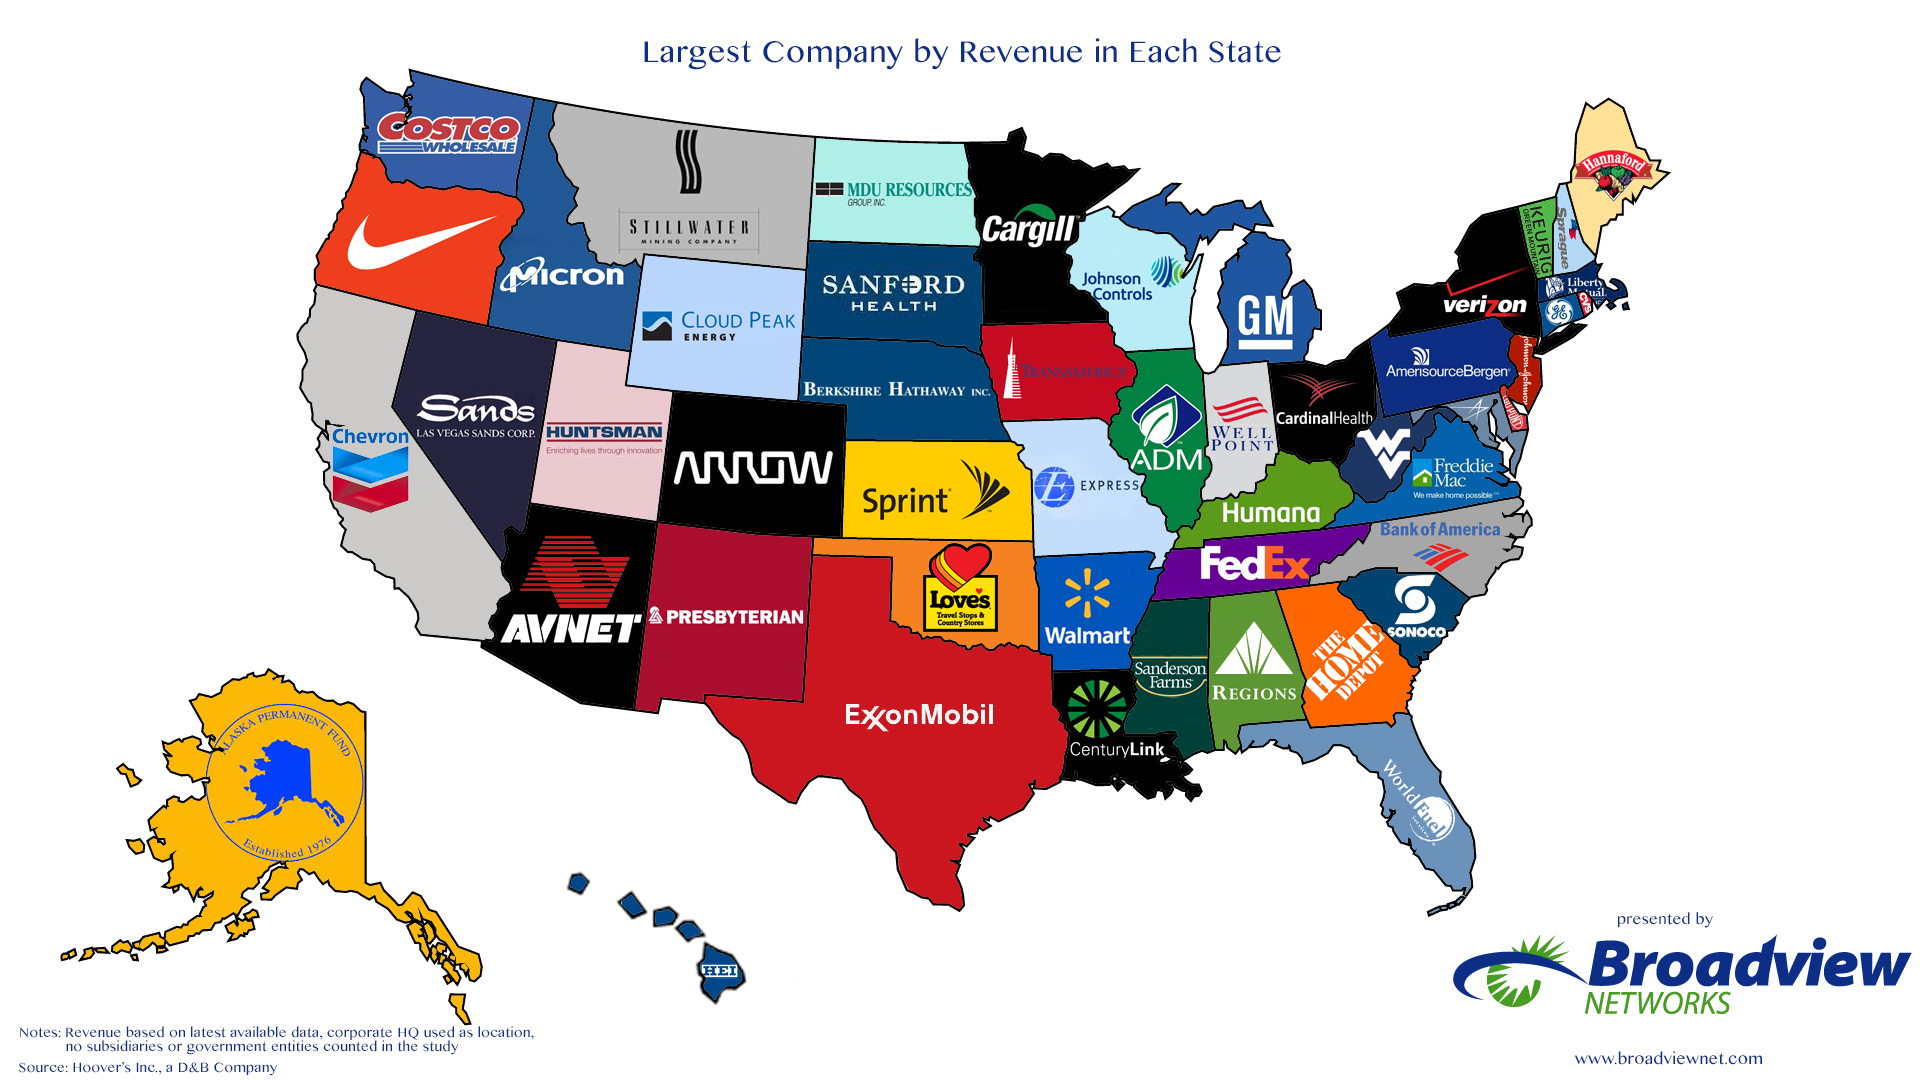 argest-Company-By-Revenue-In-Each-State-2014.jpg